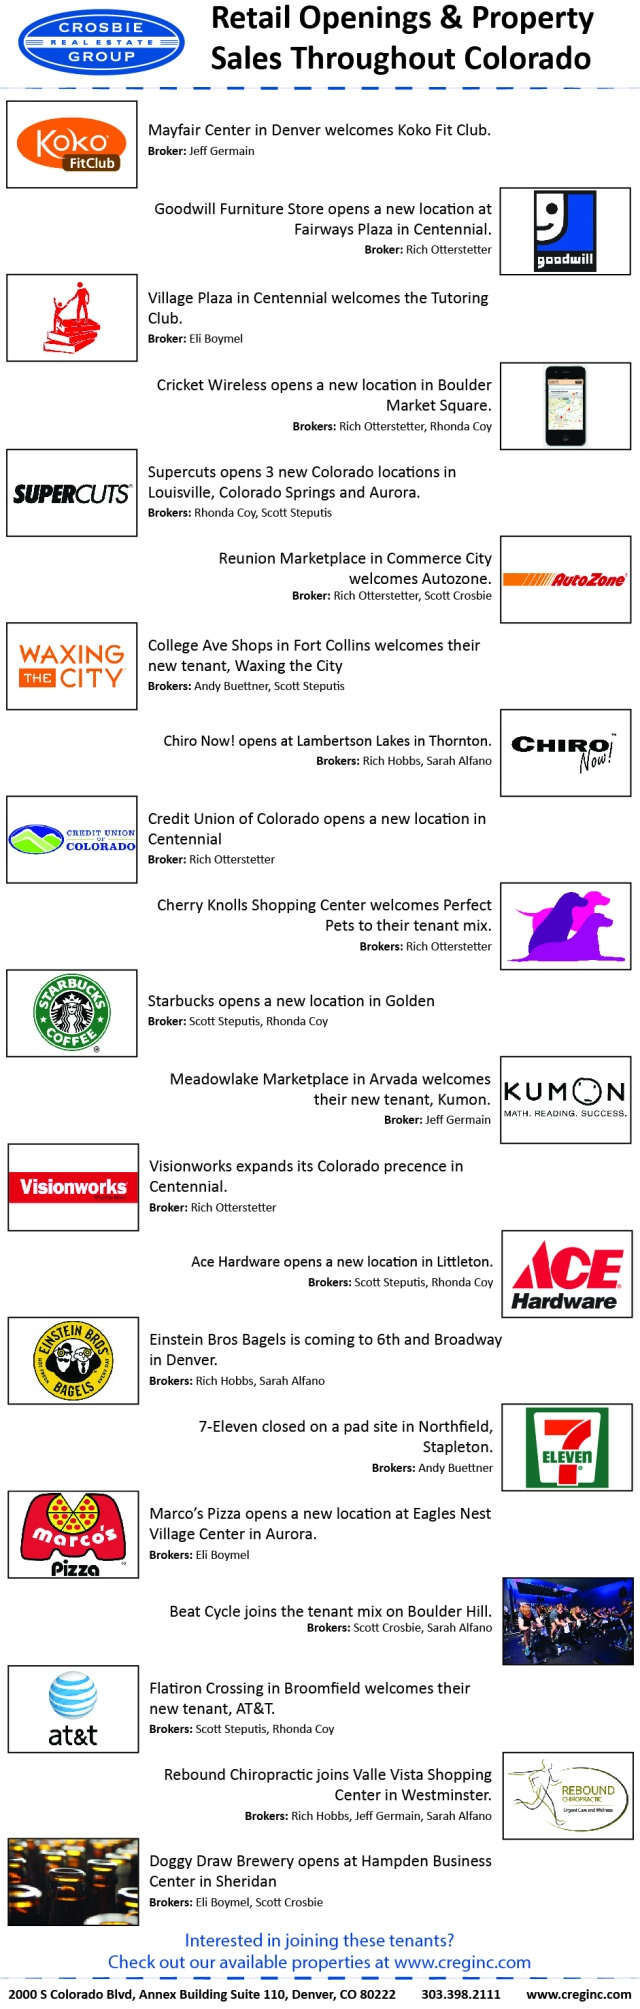 Some of our recent retail deals and tenant openings throughout the state of Colorado.